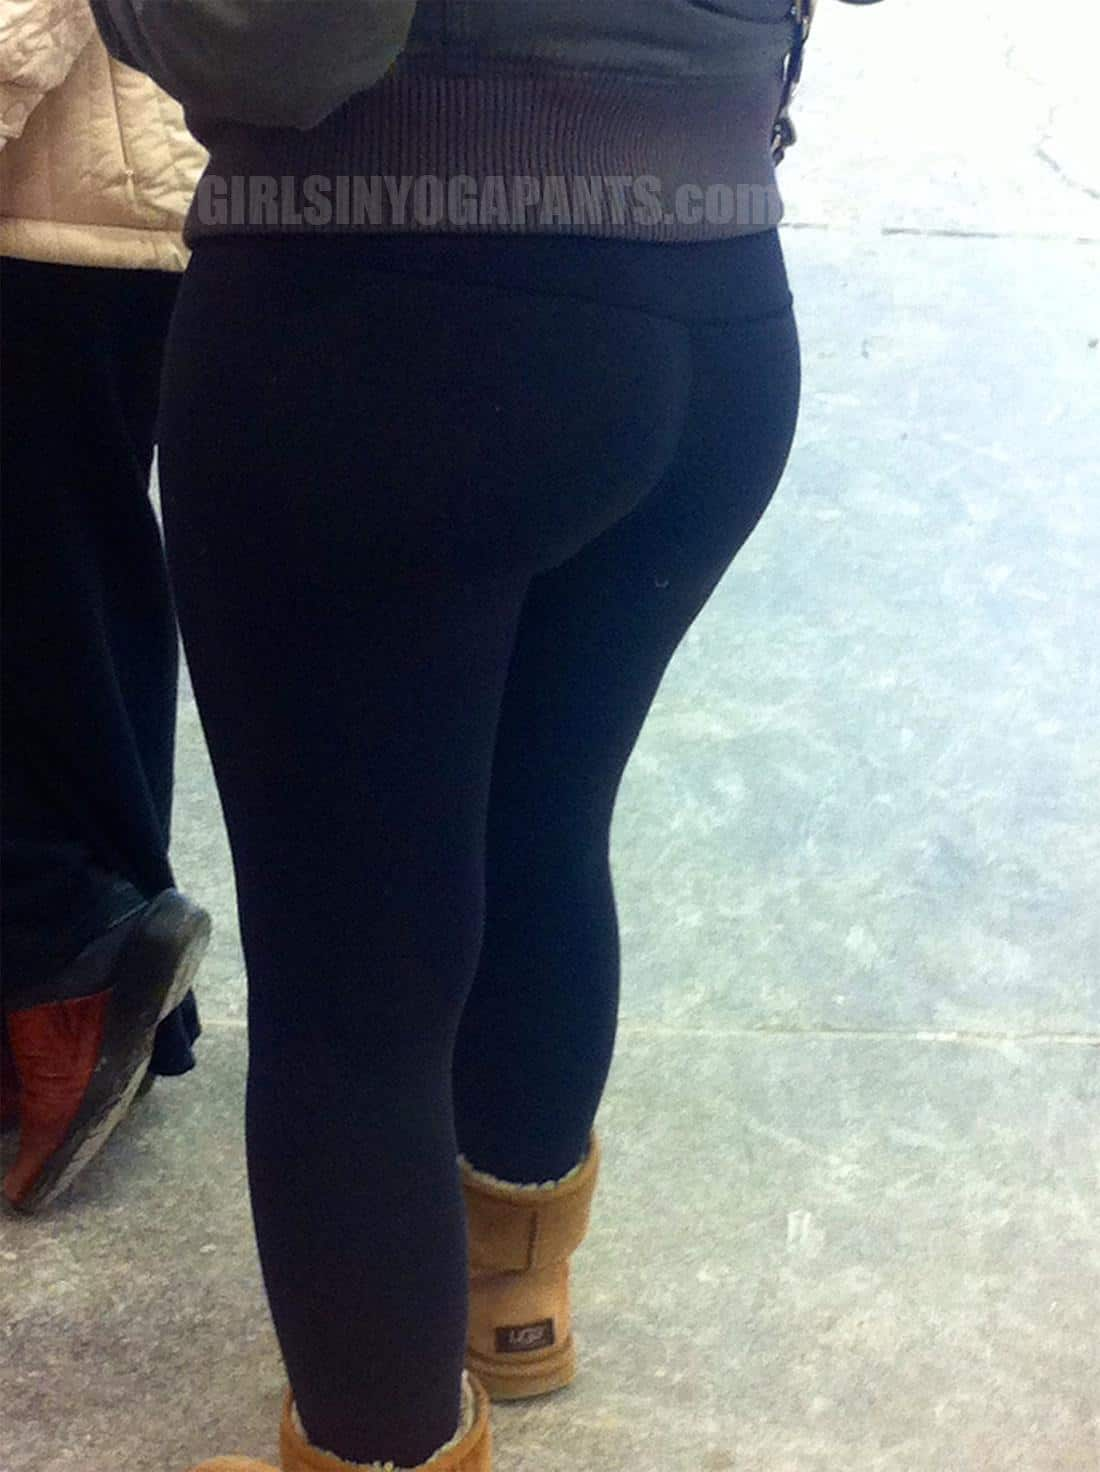 home-depot-creep-shots3